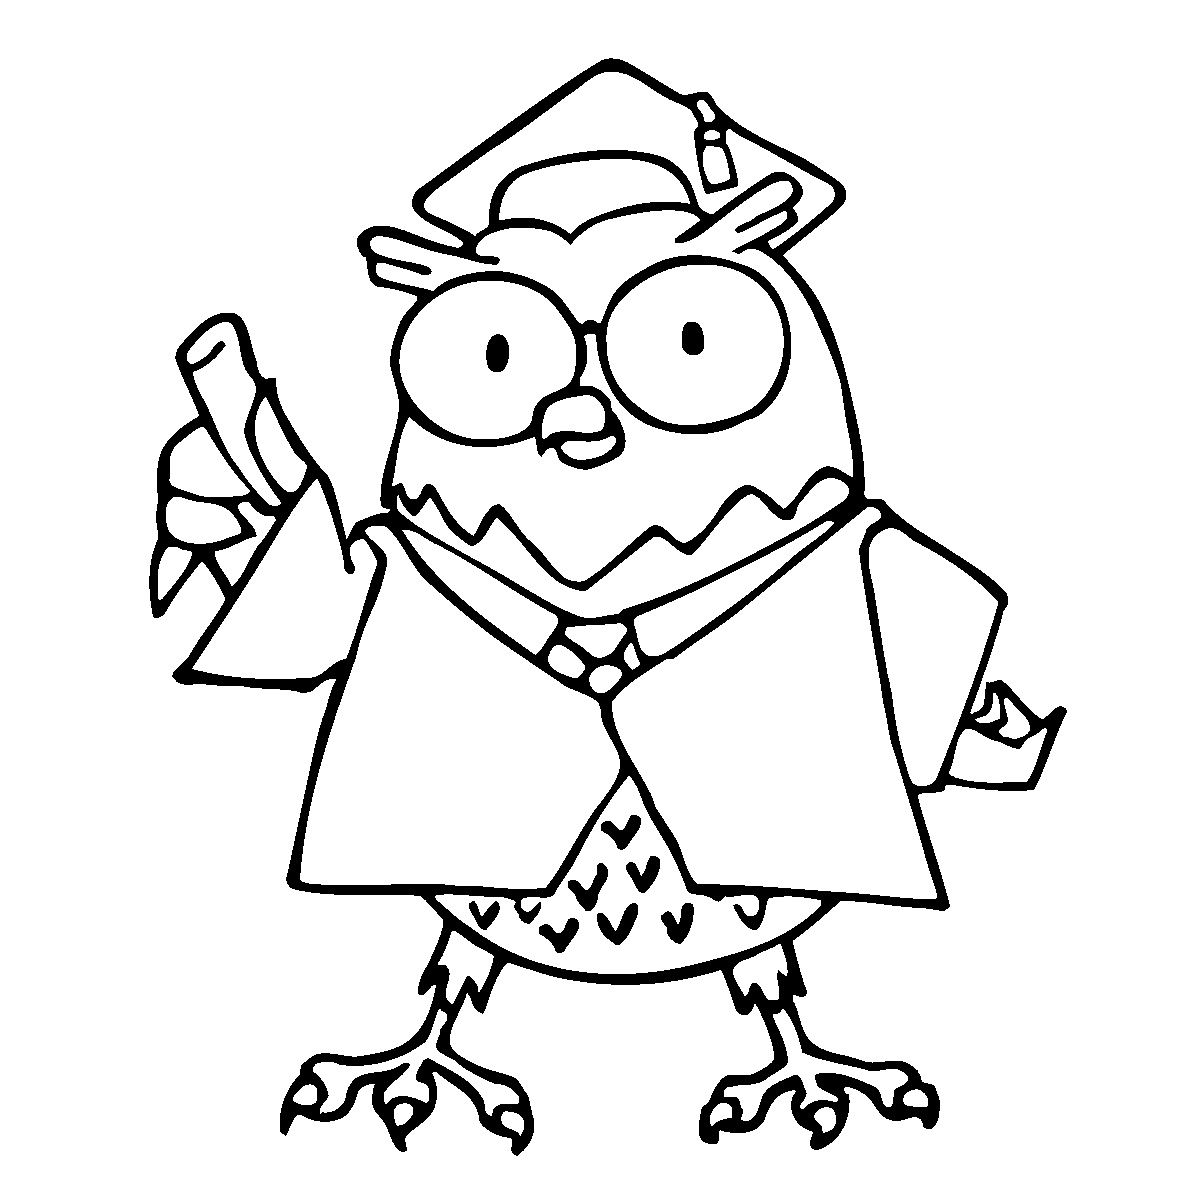 Clip Art Cartoon Professor